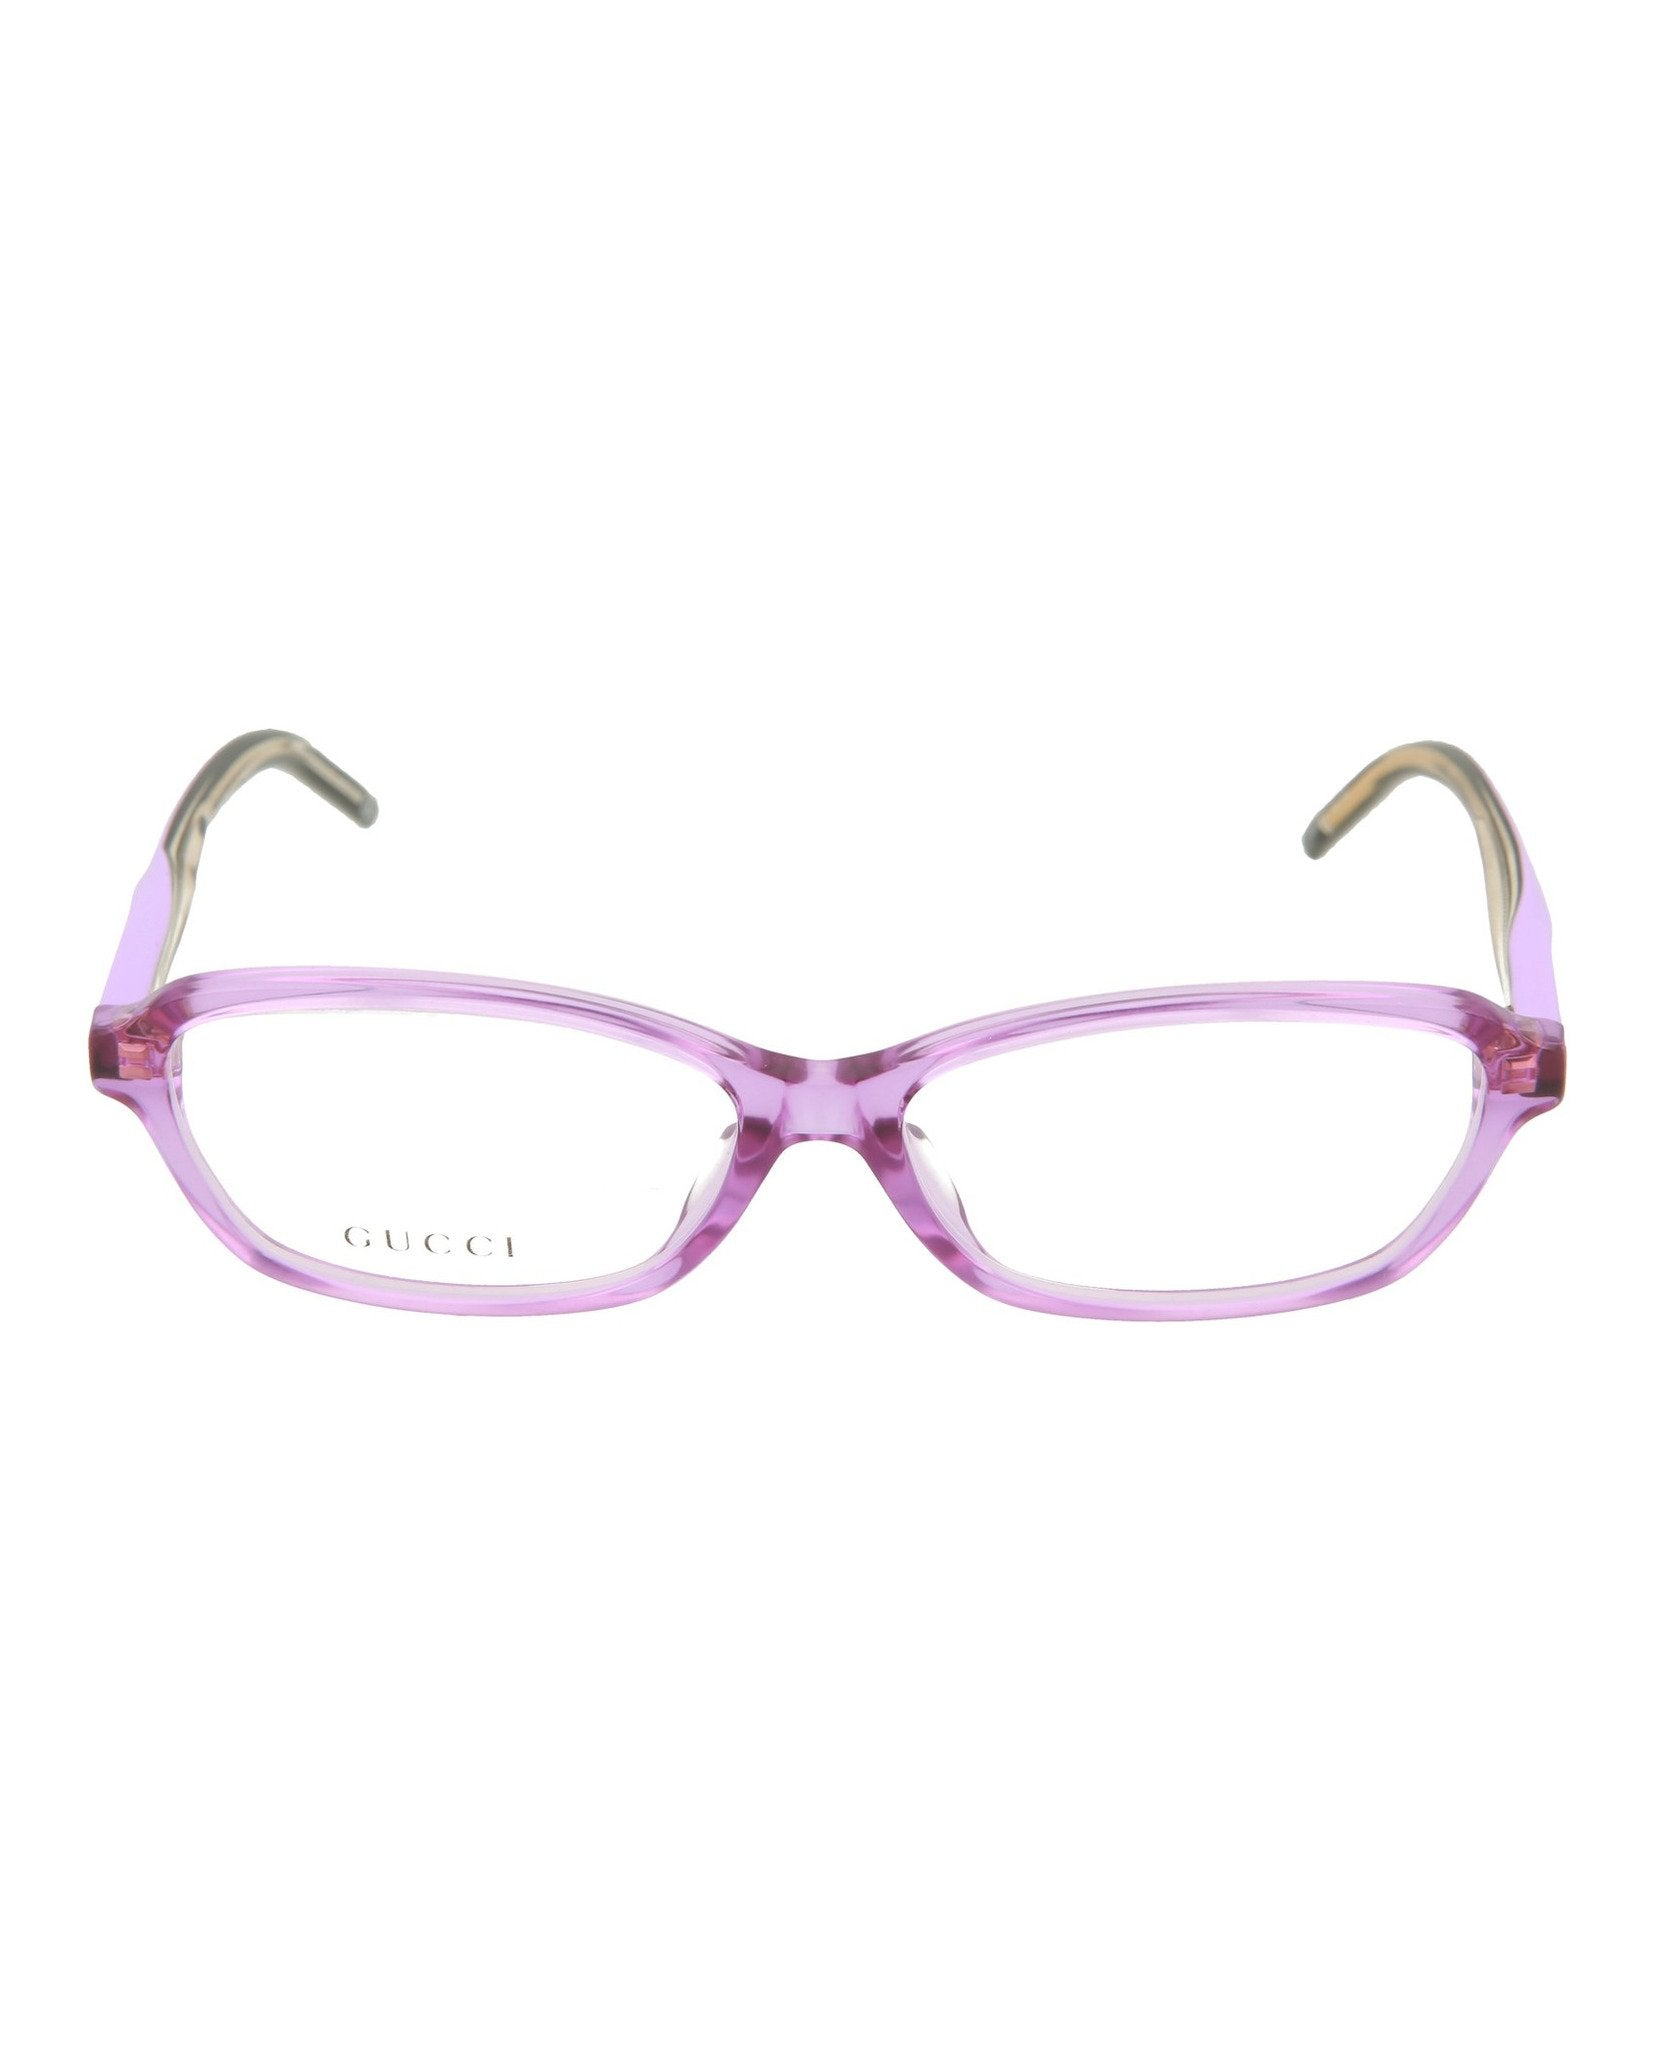 553140433f Gucci Womens Square Rectangle Optical Frames